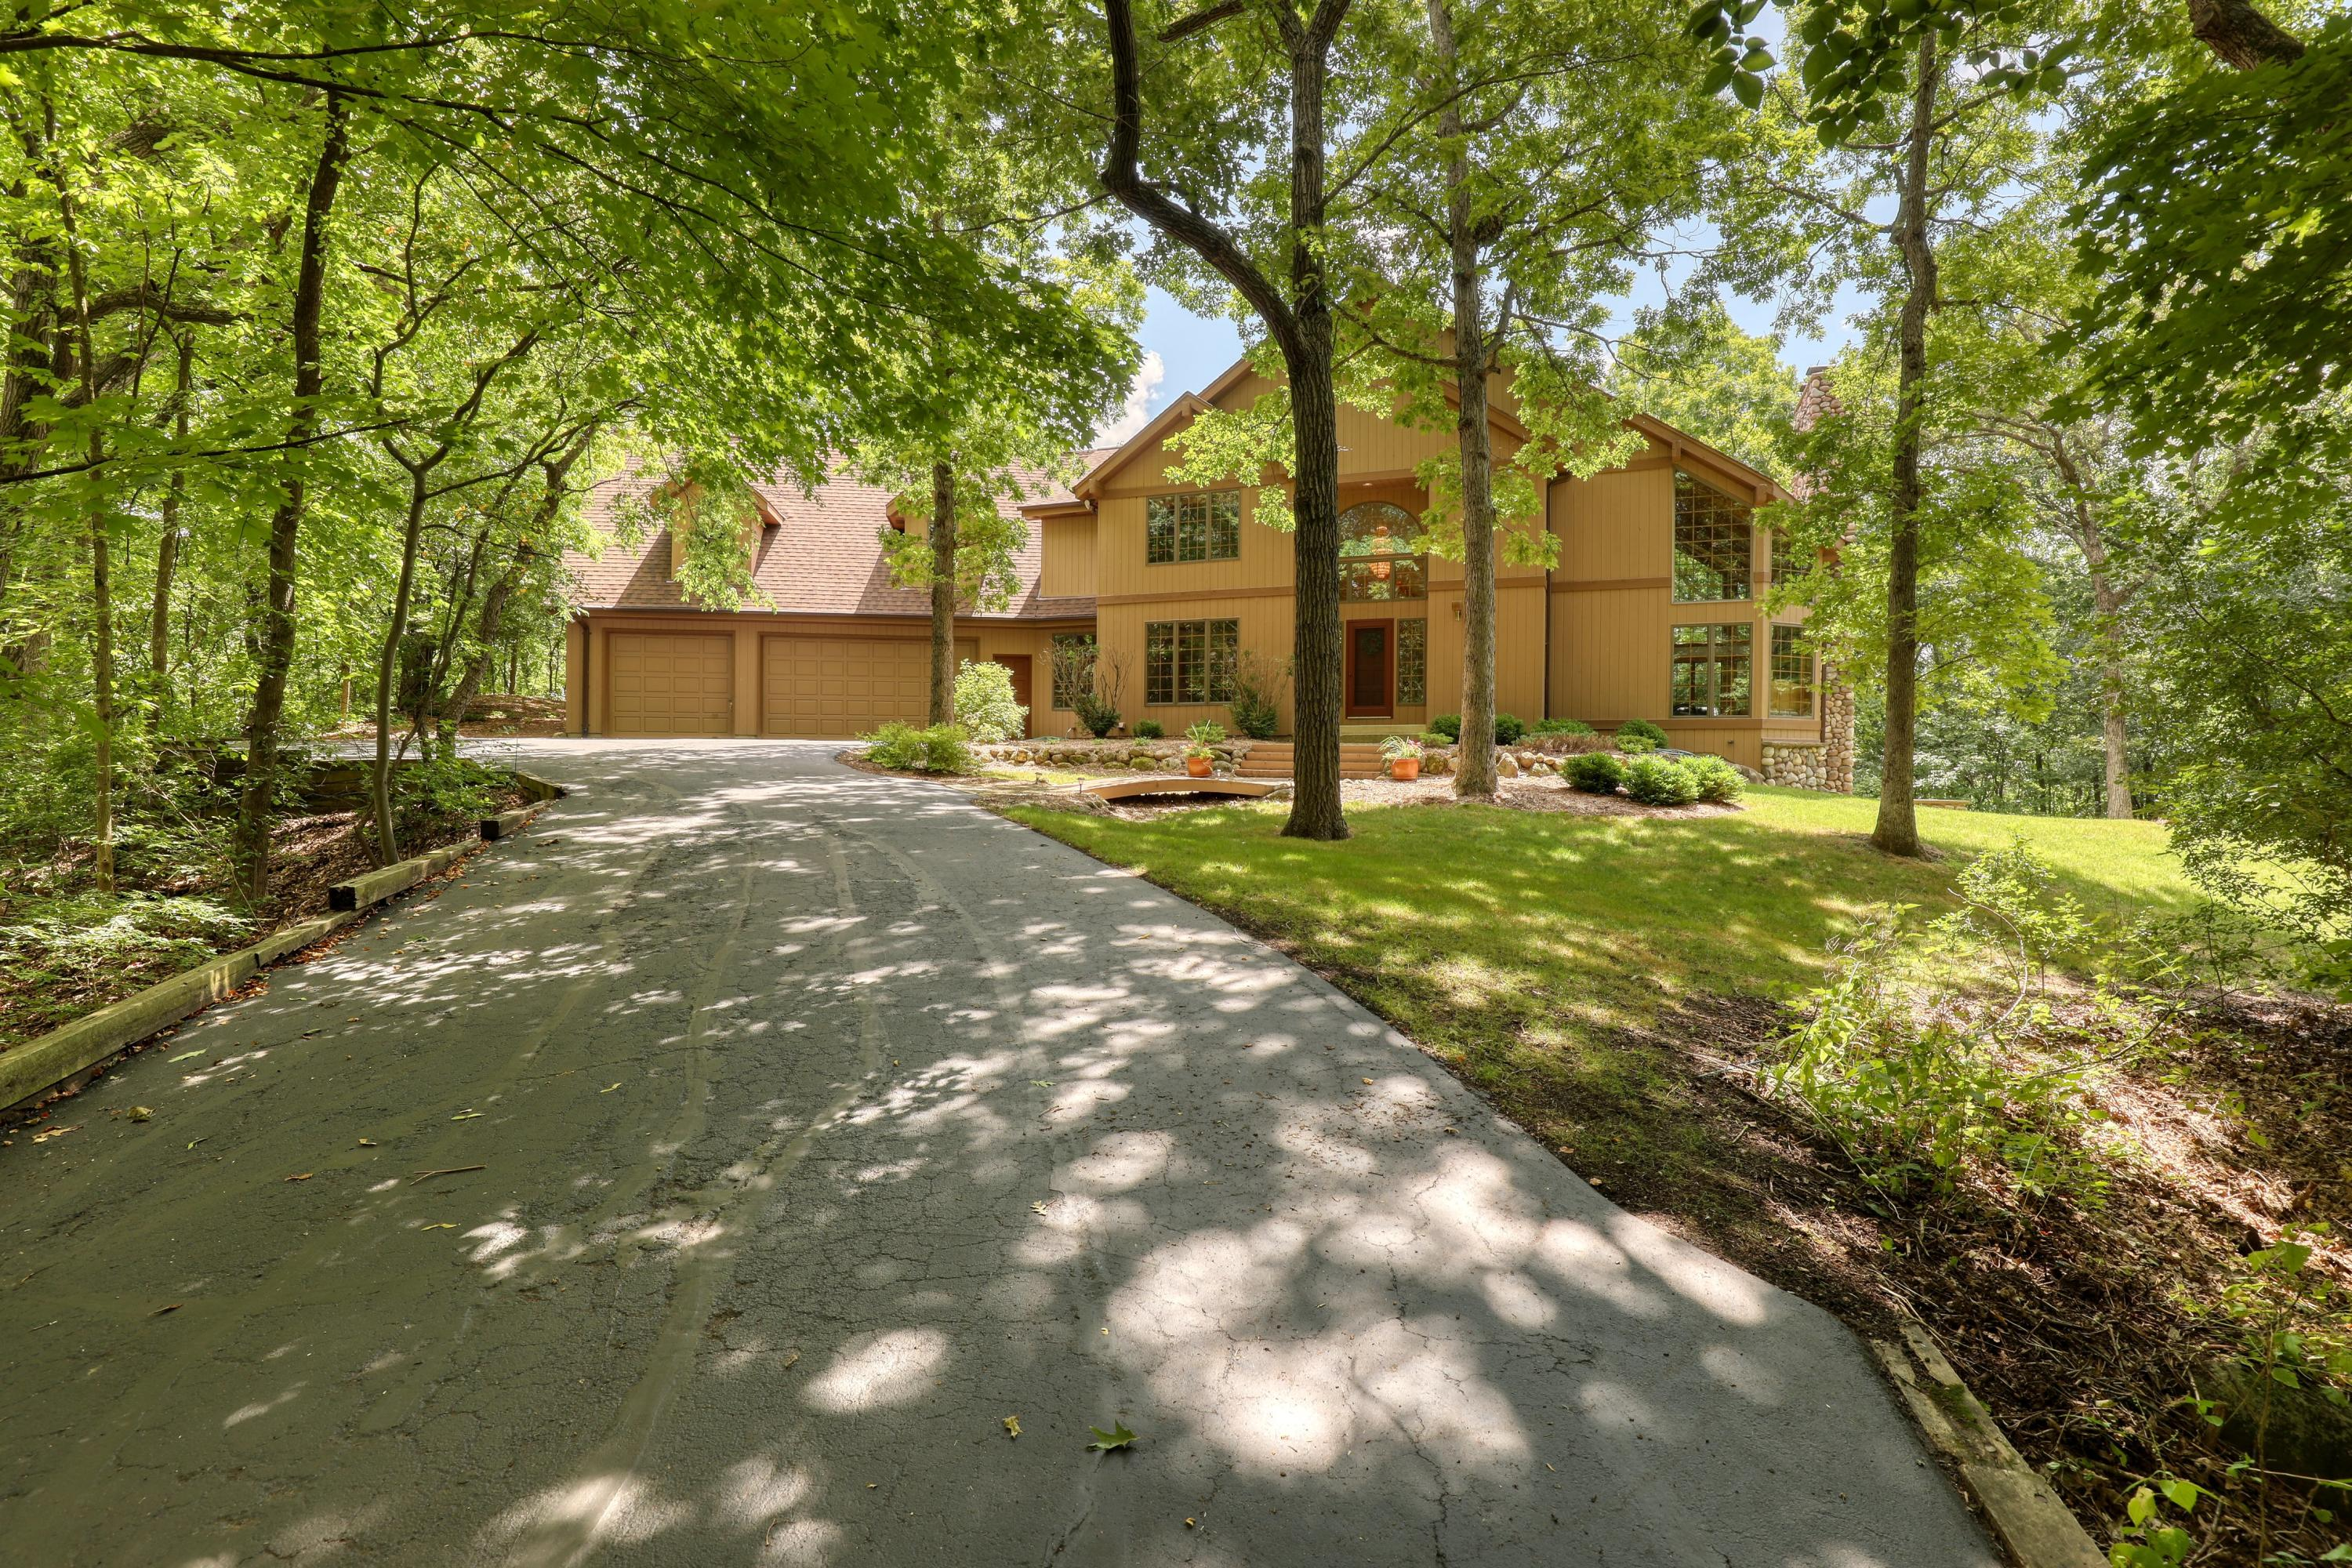 S1W31449 Hickory Hollow Ct Delafield, WI 53018 Property Image